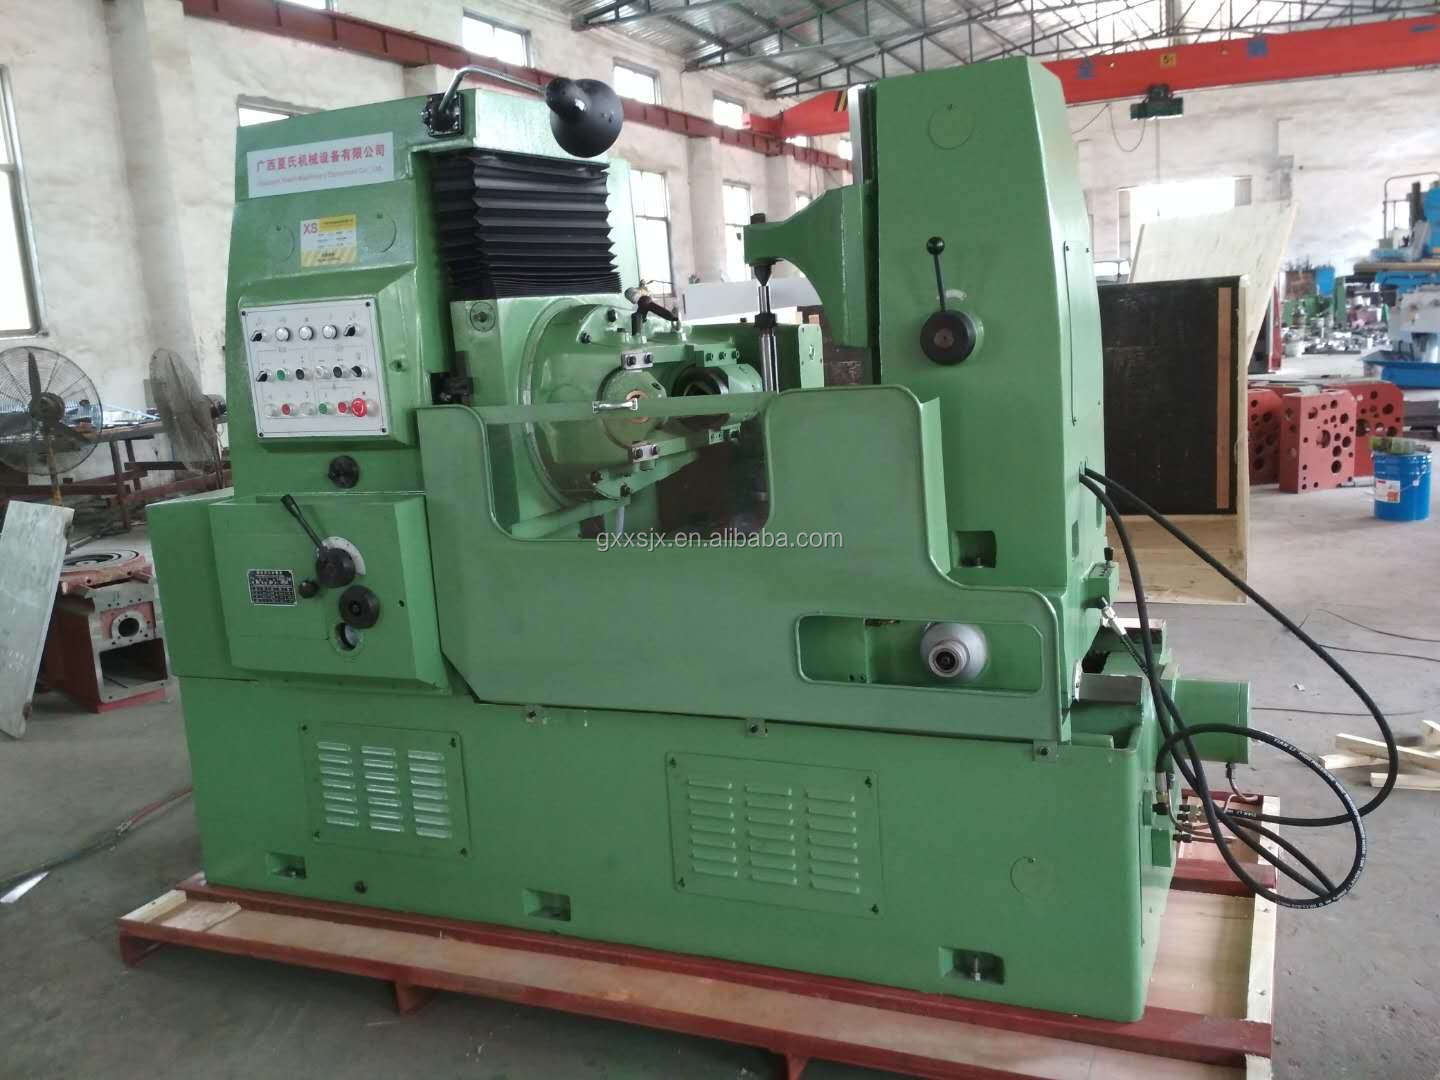 XSY3150K gear making machine for worm gear with competitive price